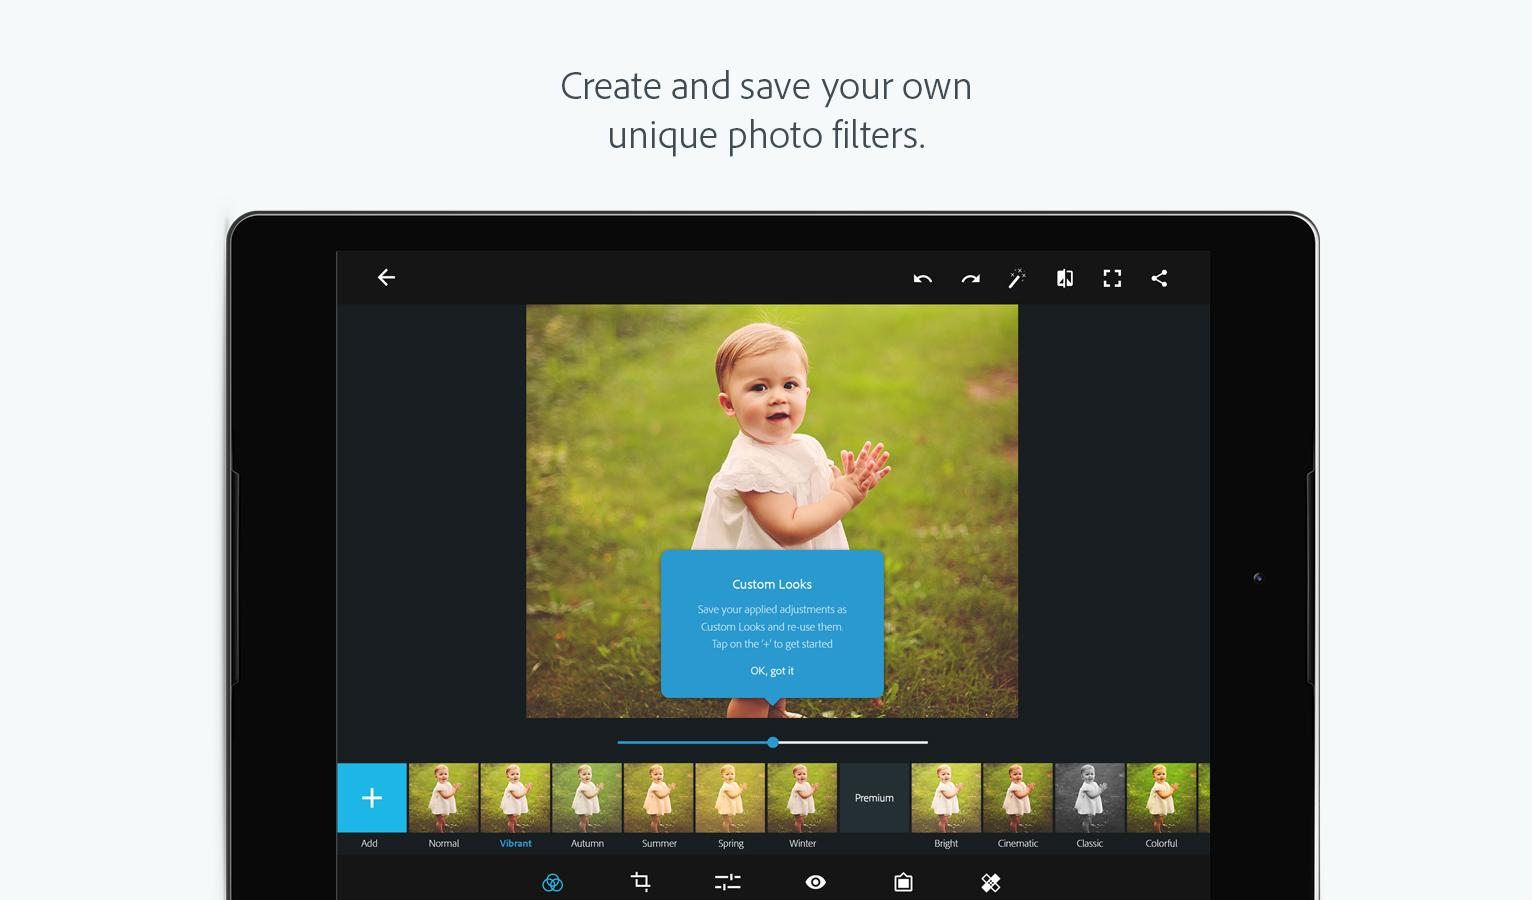 Adobe Photoshop Express is a free mobile app for making quick, powerful, and easy photo edits and creating collages. Apply instant filters called Looks, choose from an array of adjustment and correction options to touch up your photos, and instantly share them on social media.